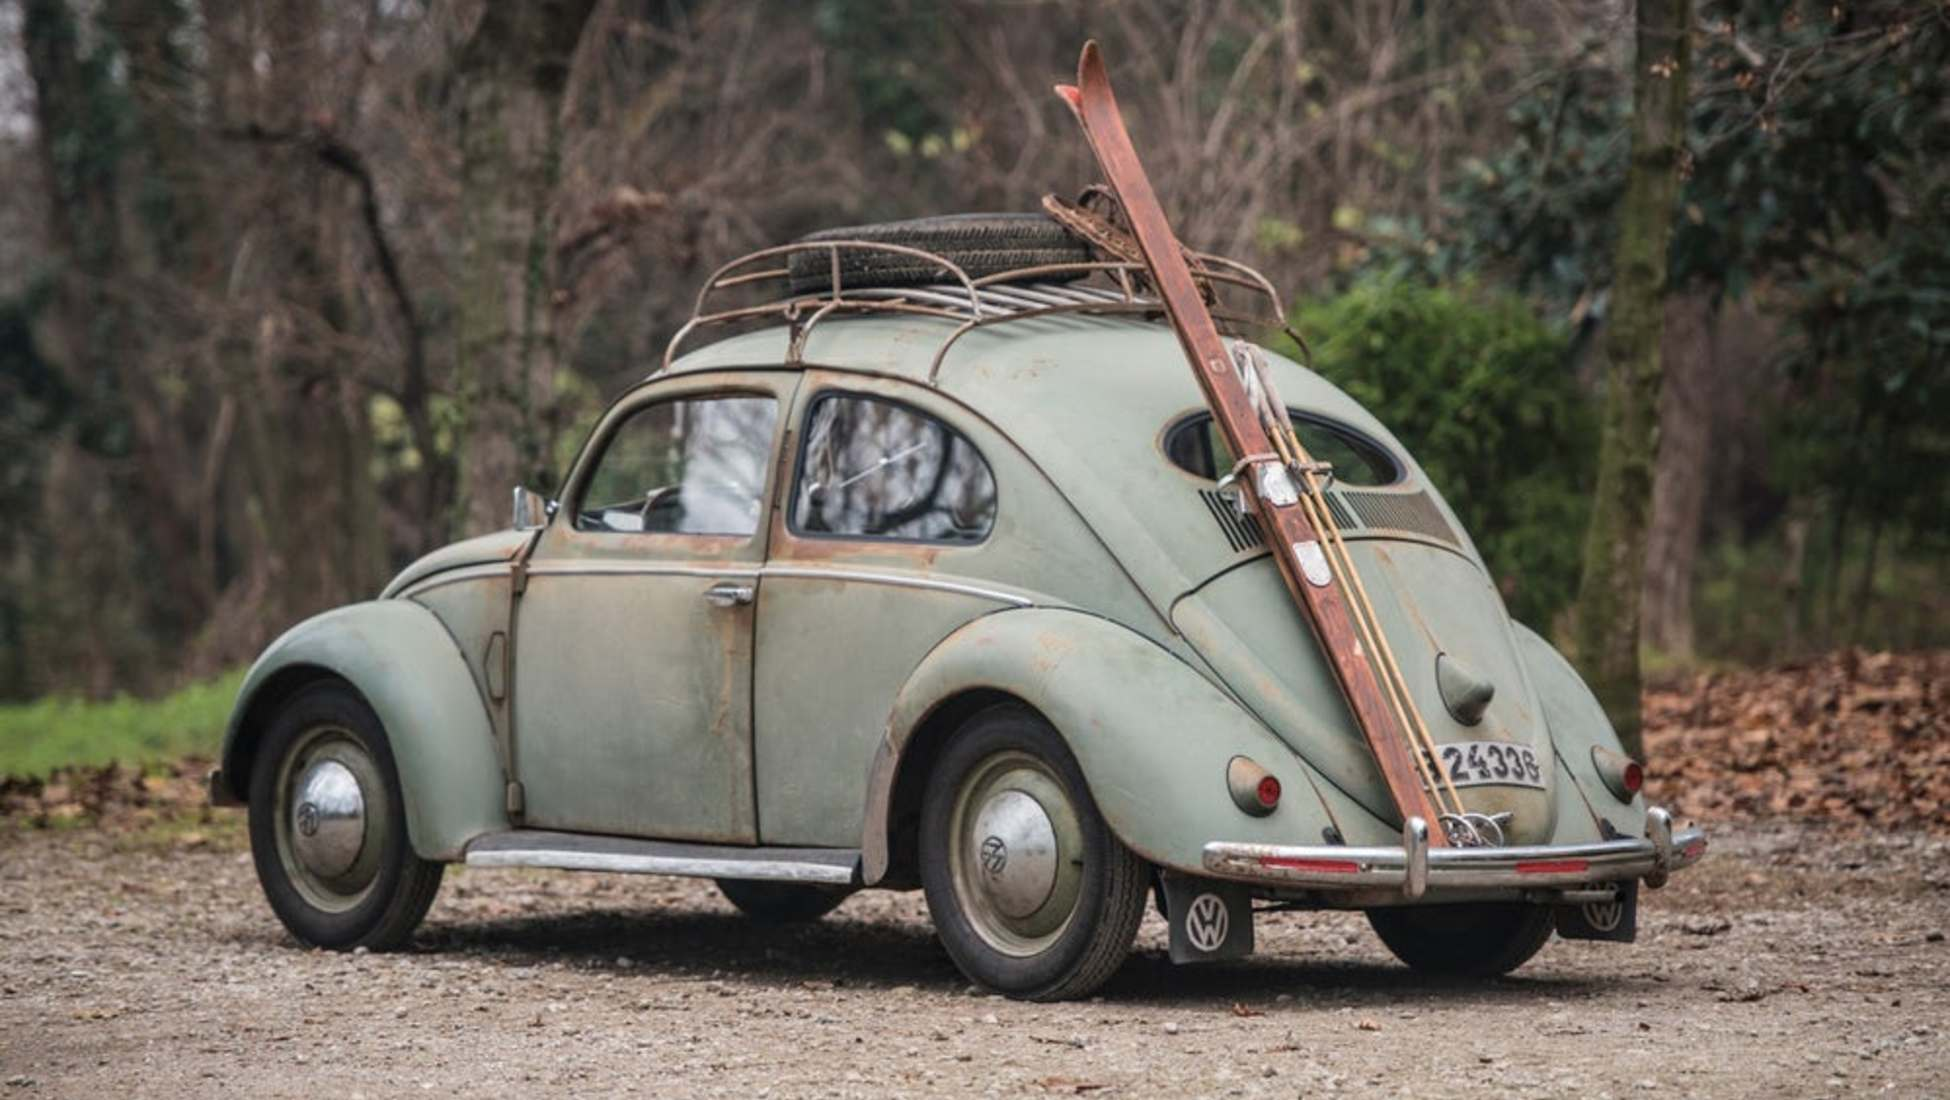 Top 5 Most Expensive Volkswagen Beetles Cars - Catawiki